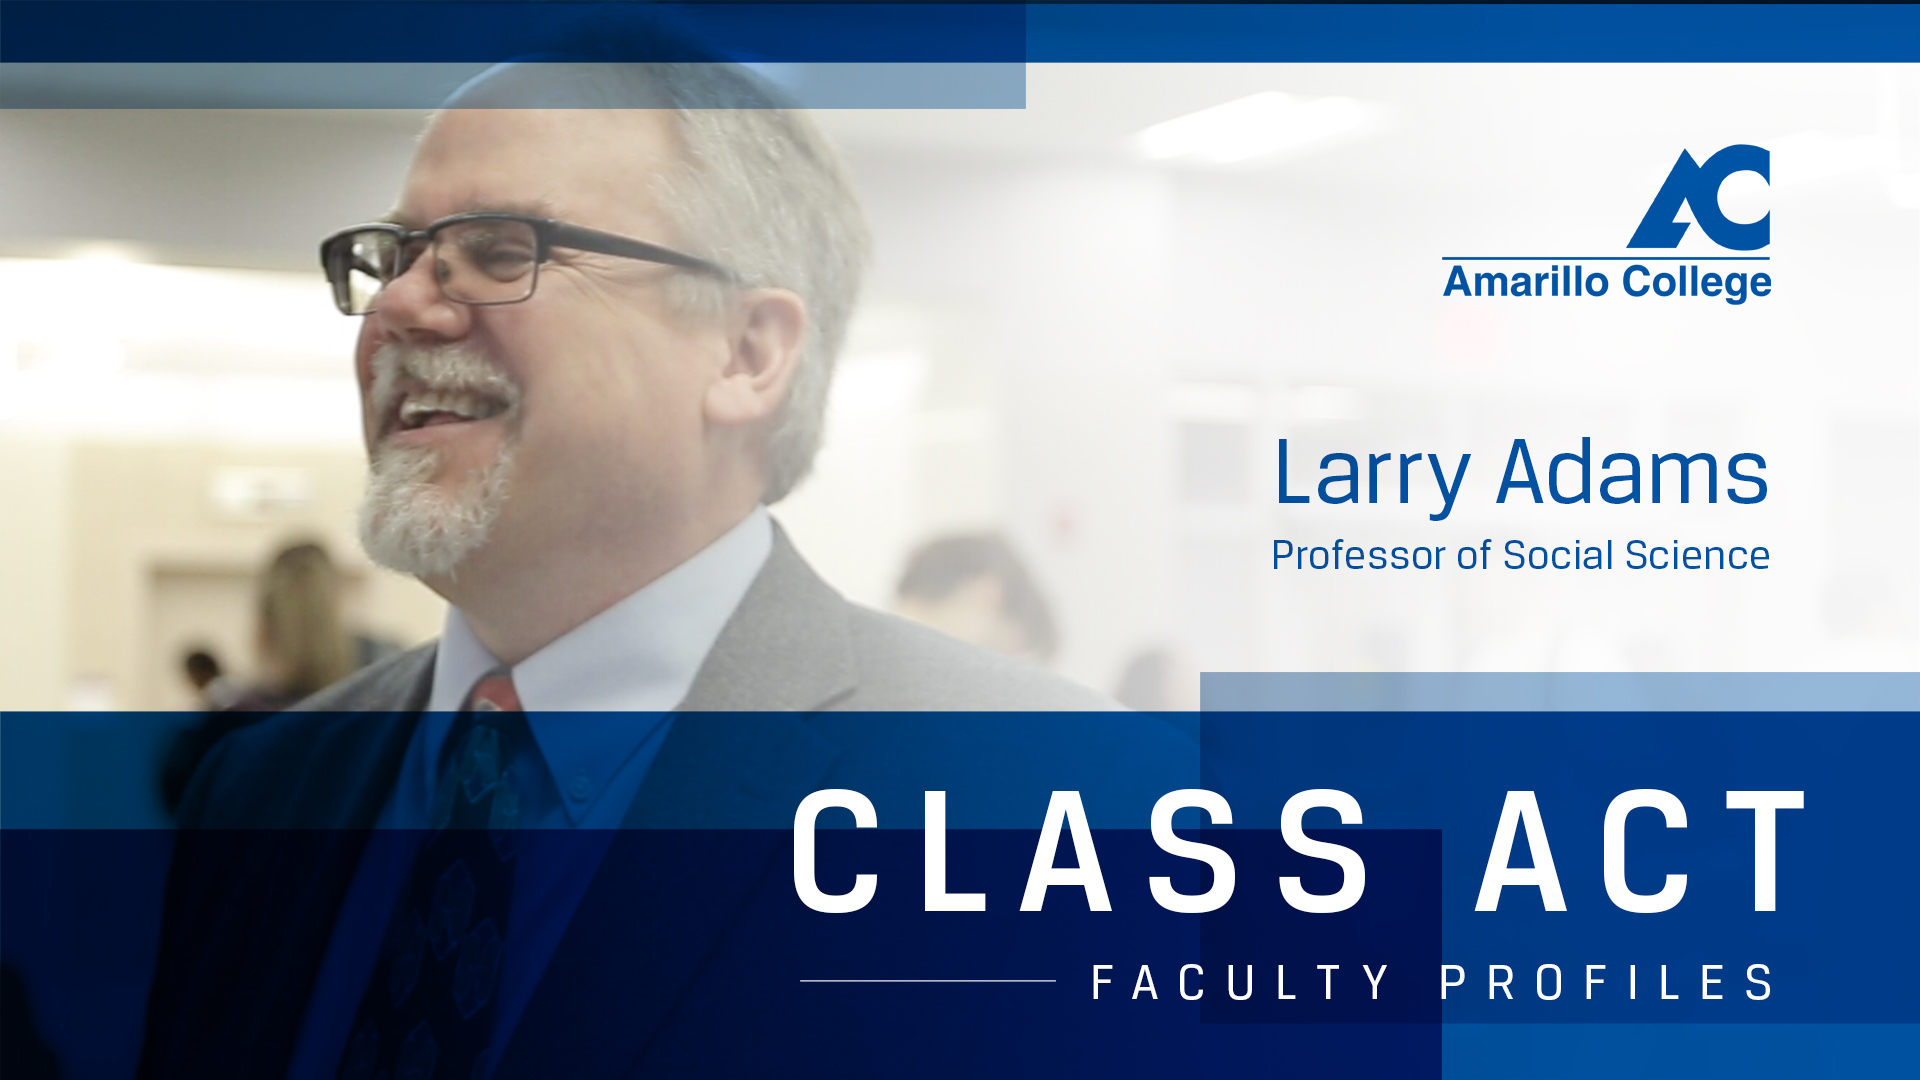 CLASS ACT Larry Adams